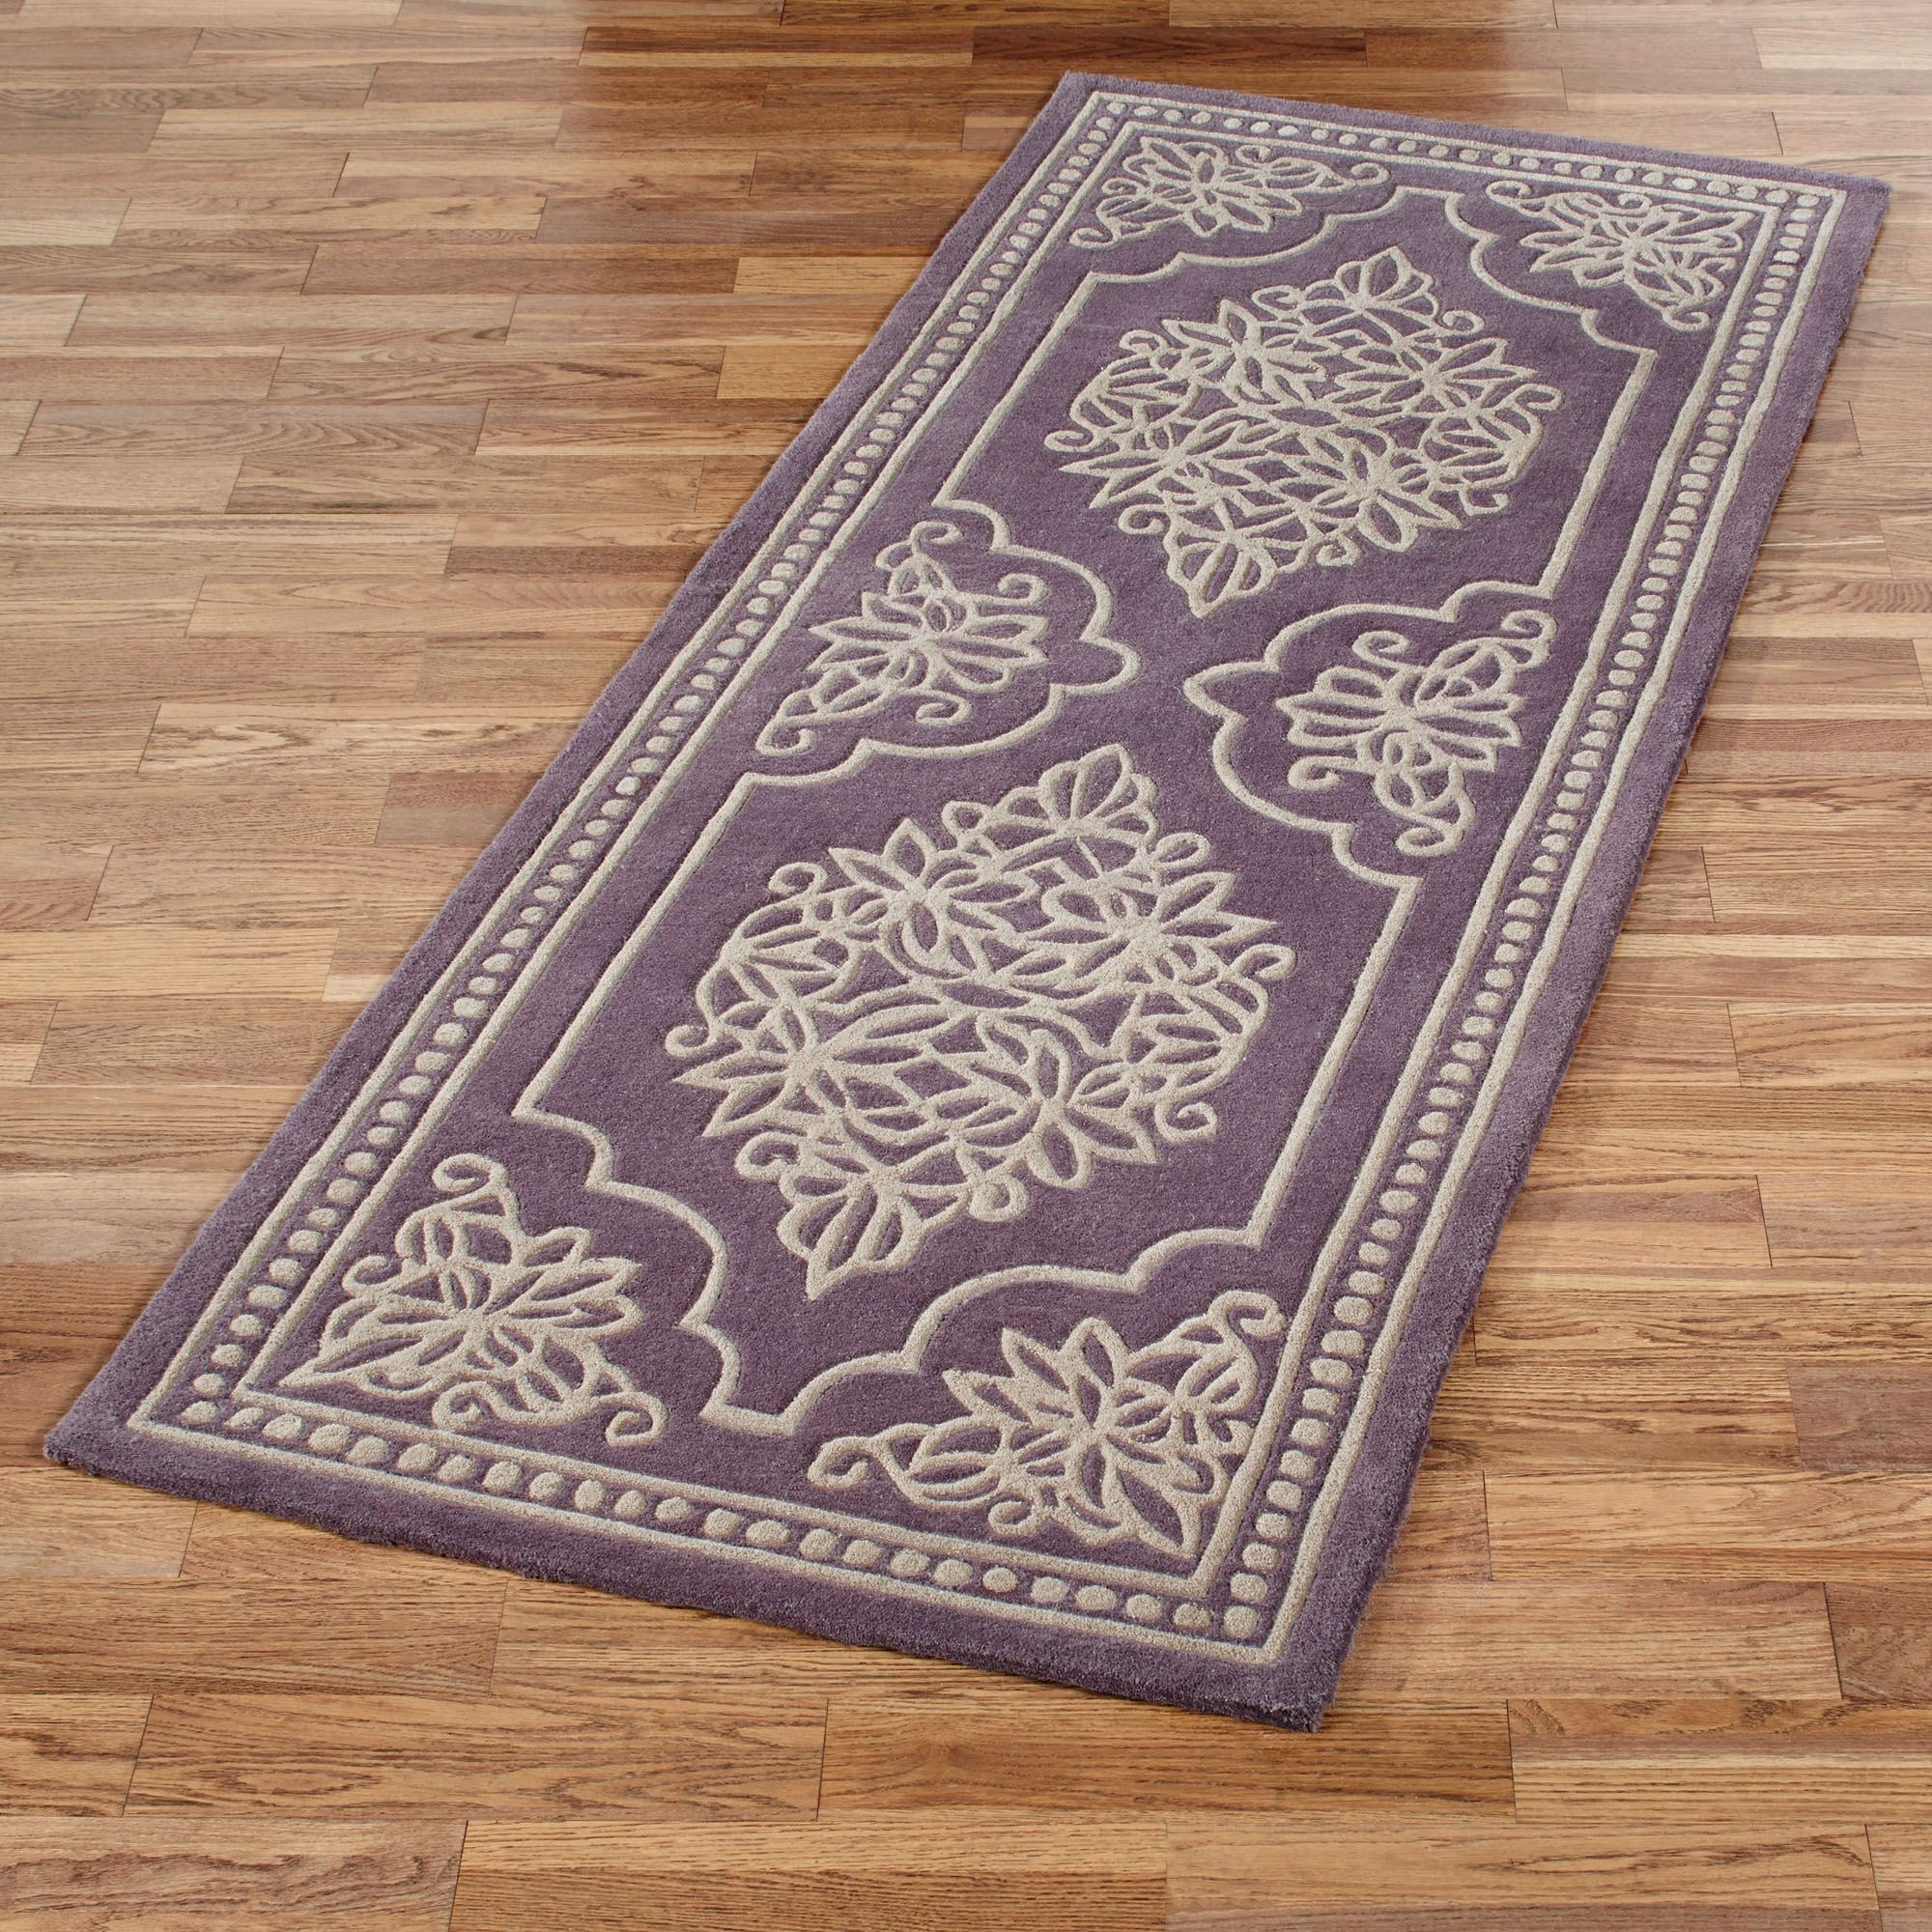 Vintage Lace Area Rugs